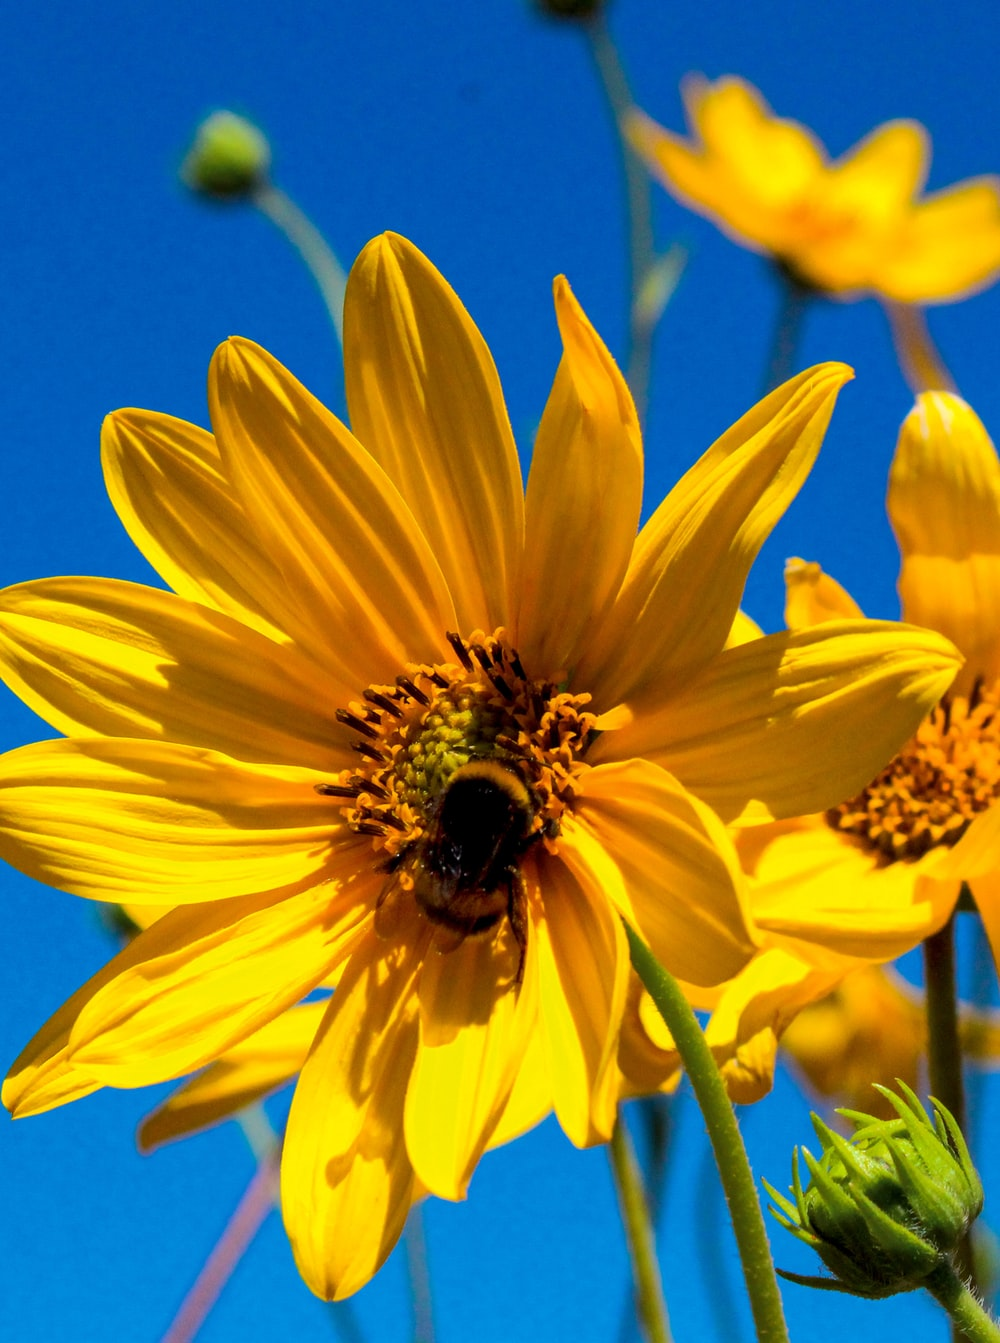 yellow sunflower under blue sky during daytime